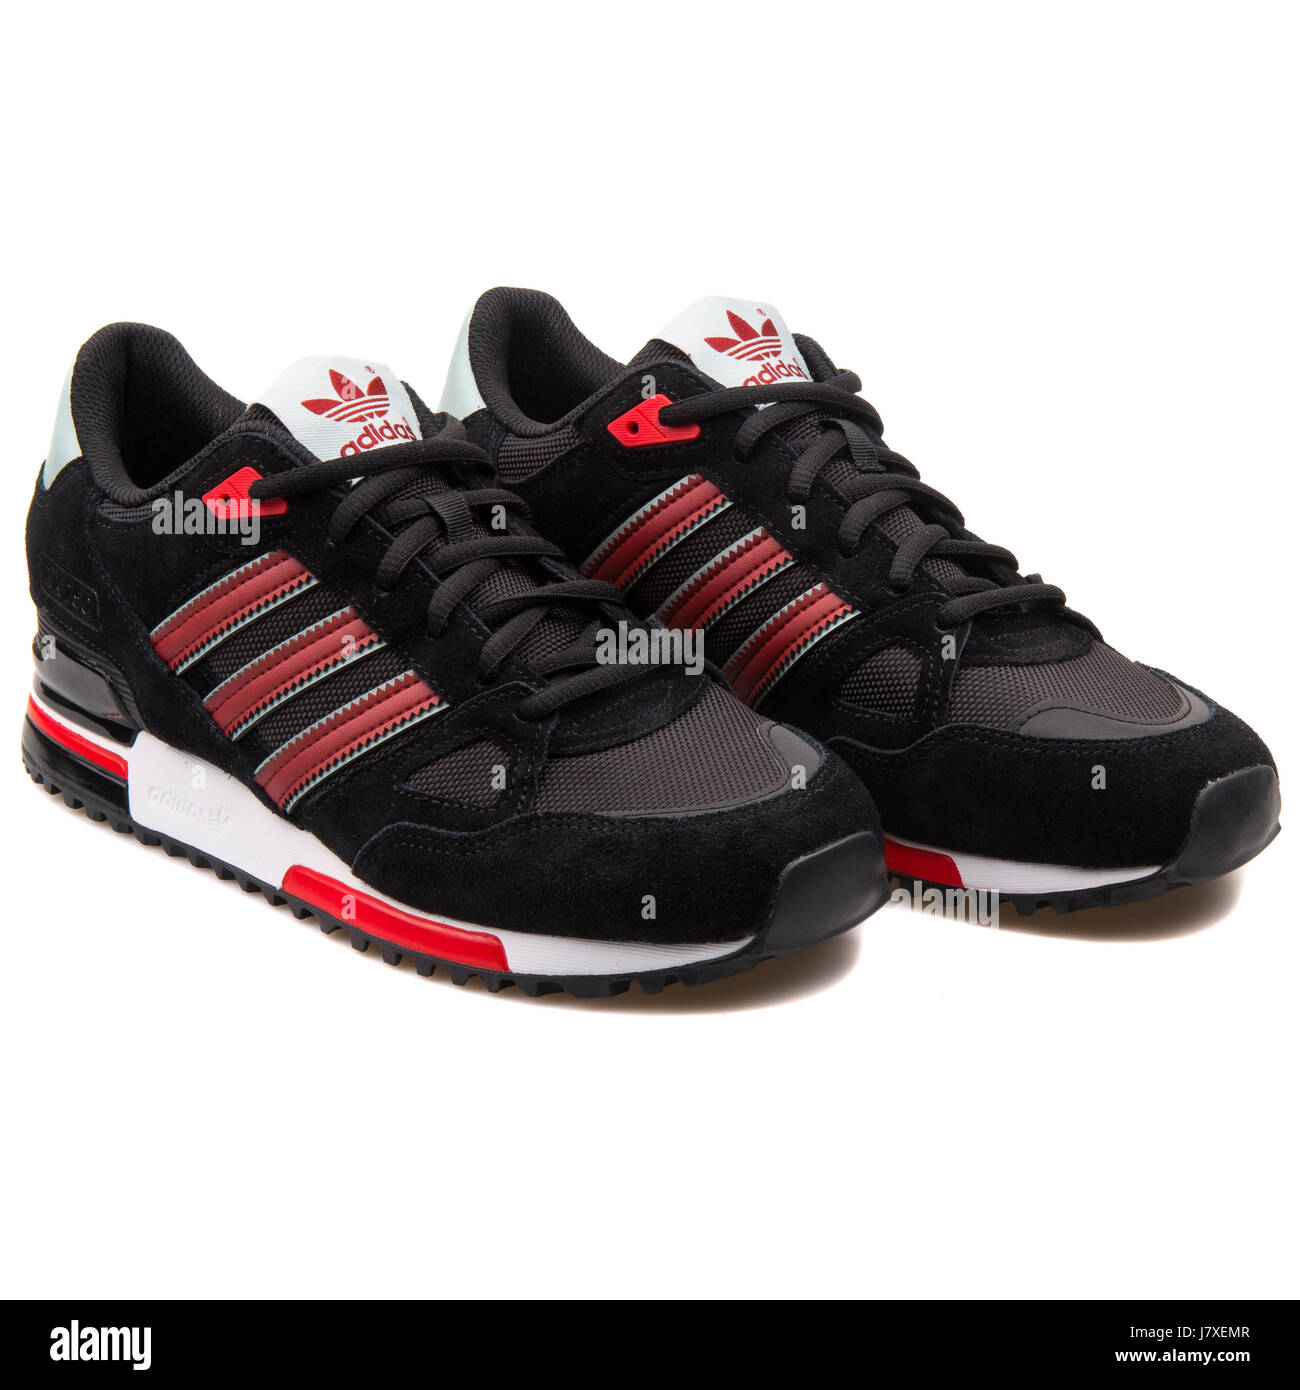 sports shoes 8ad28 d25d5 Adidas ZX 750 Men's Black with Red Sneakers - B24856 Stock ...